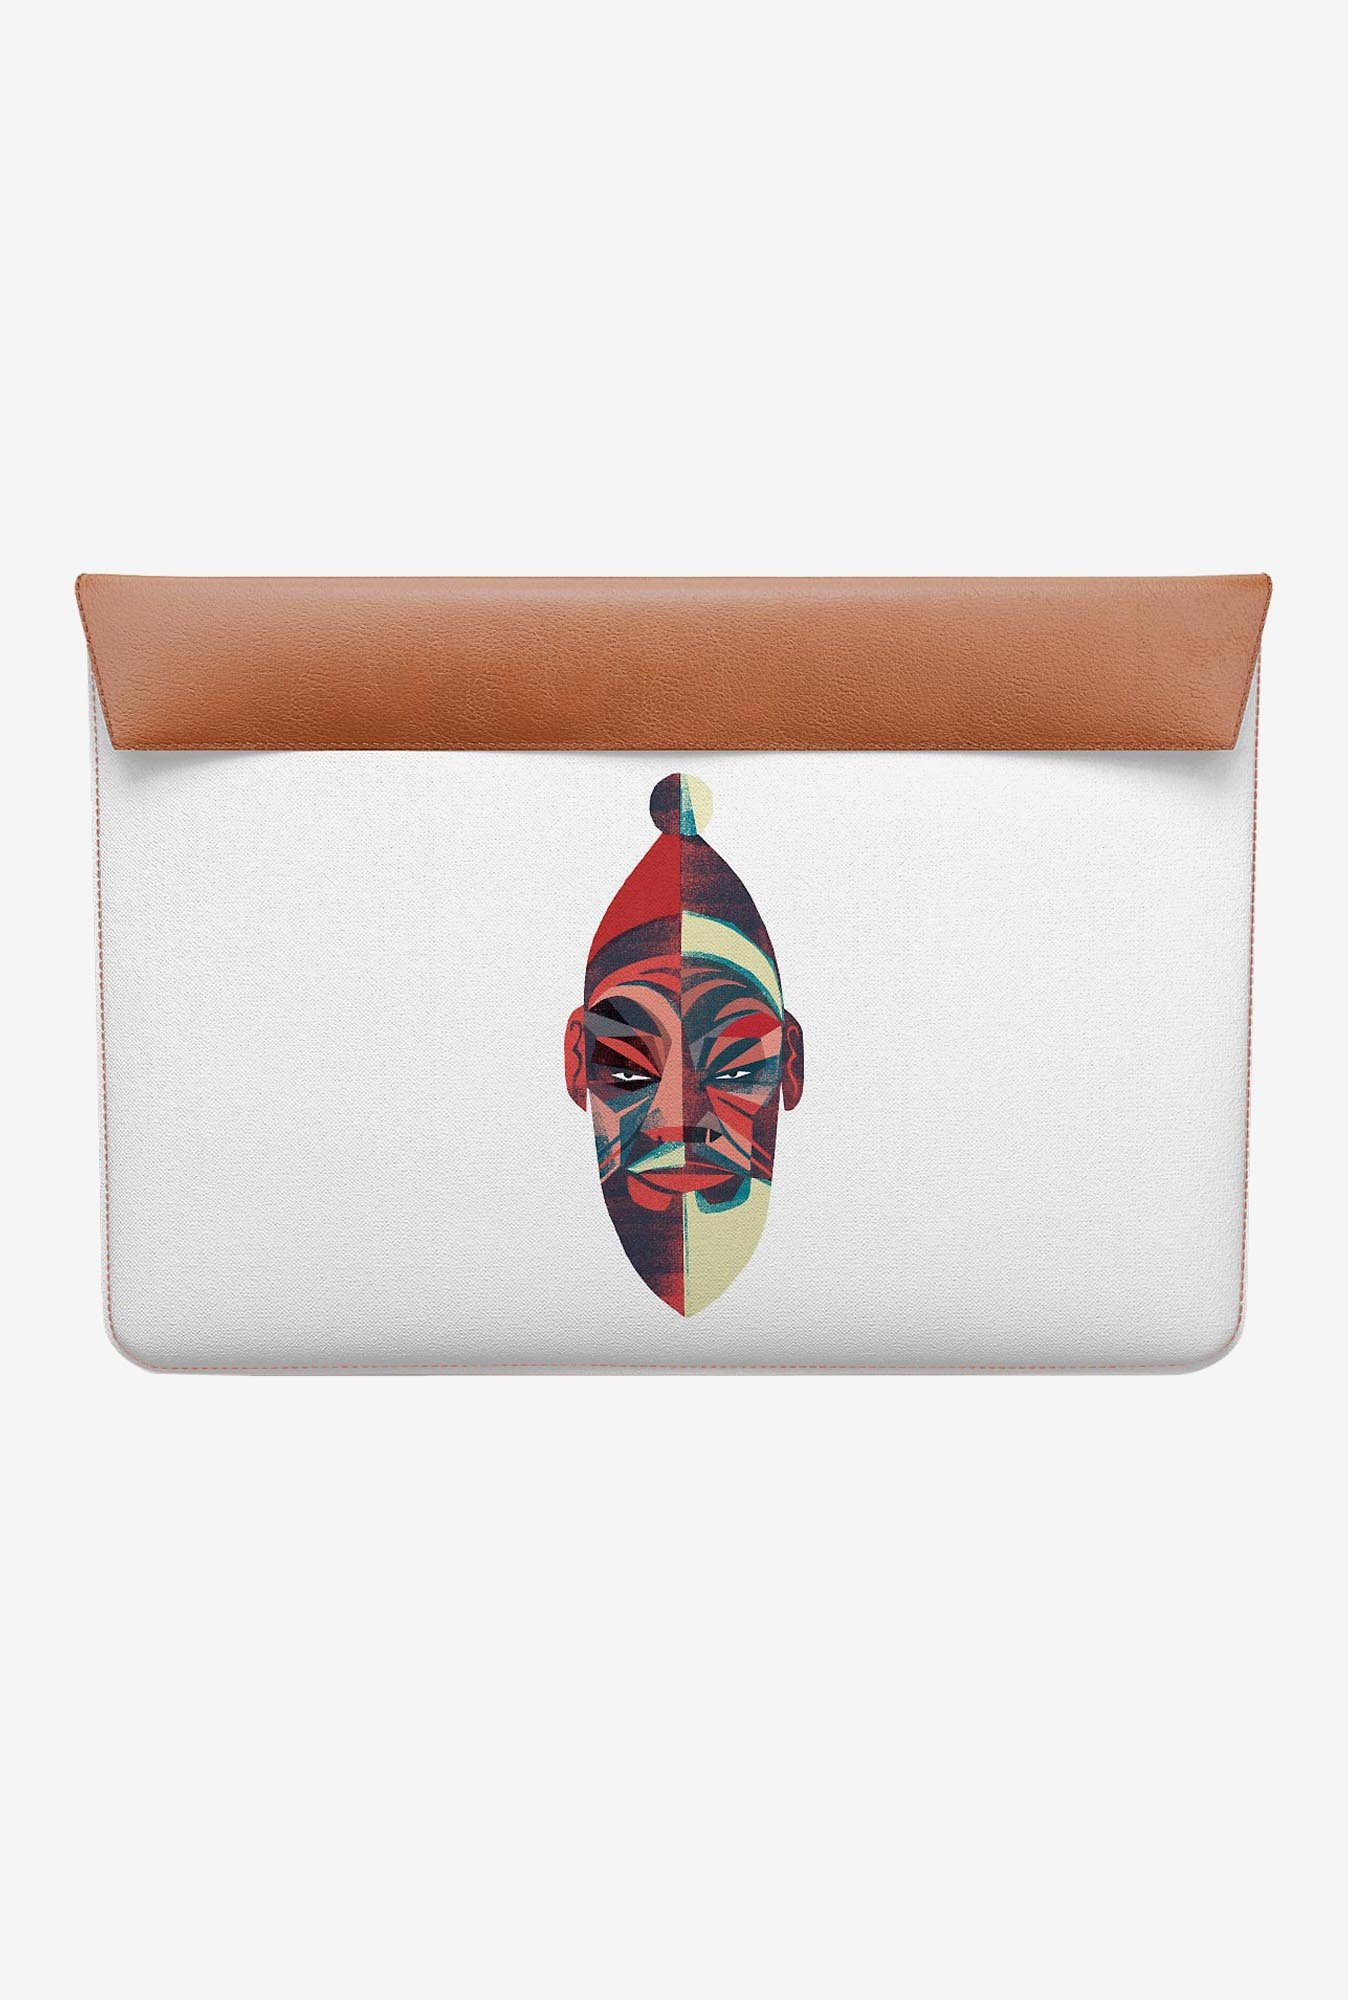 DailyObjects Nonplussed Inuit MacBook Air 11 Envelope Sleeve